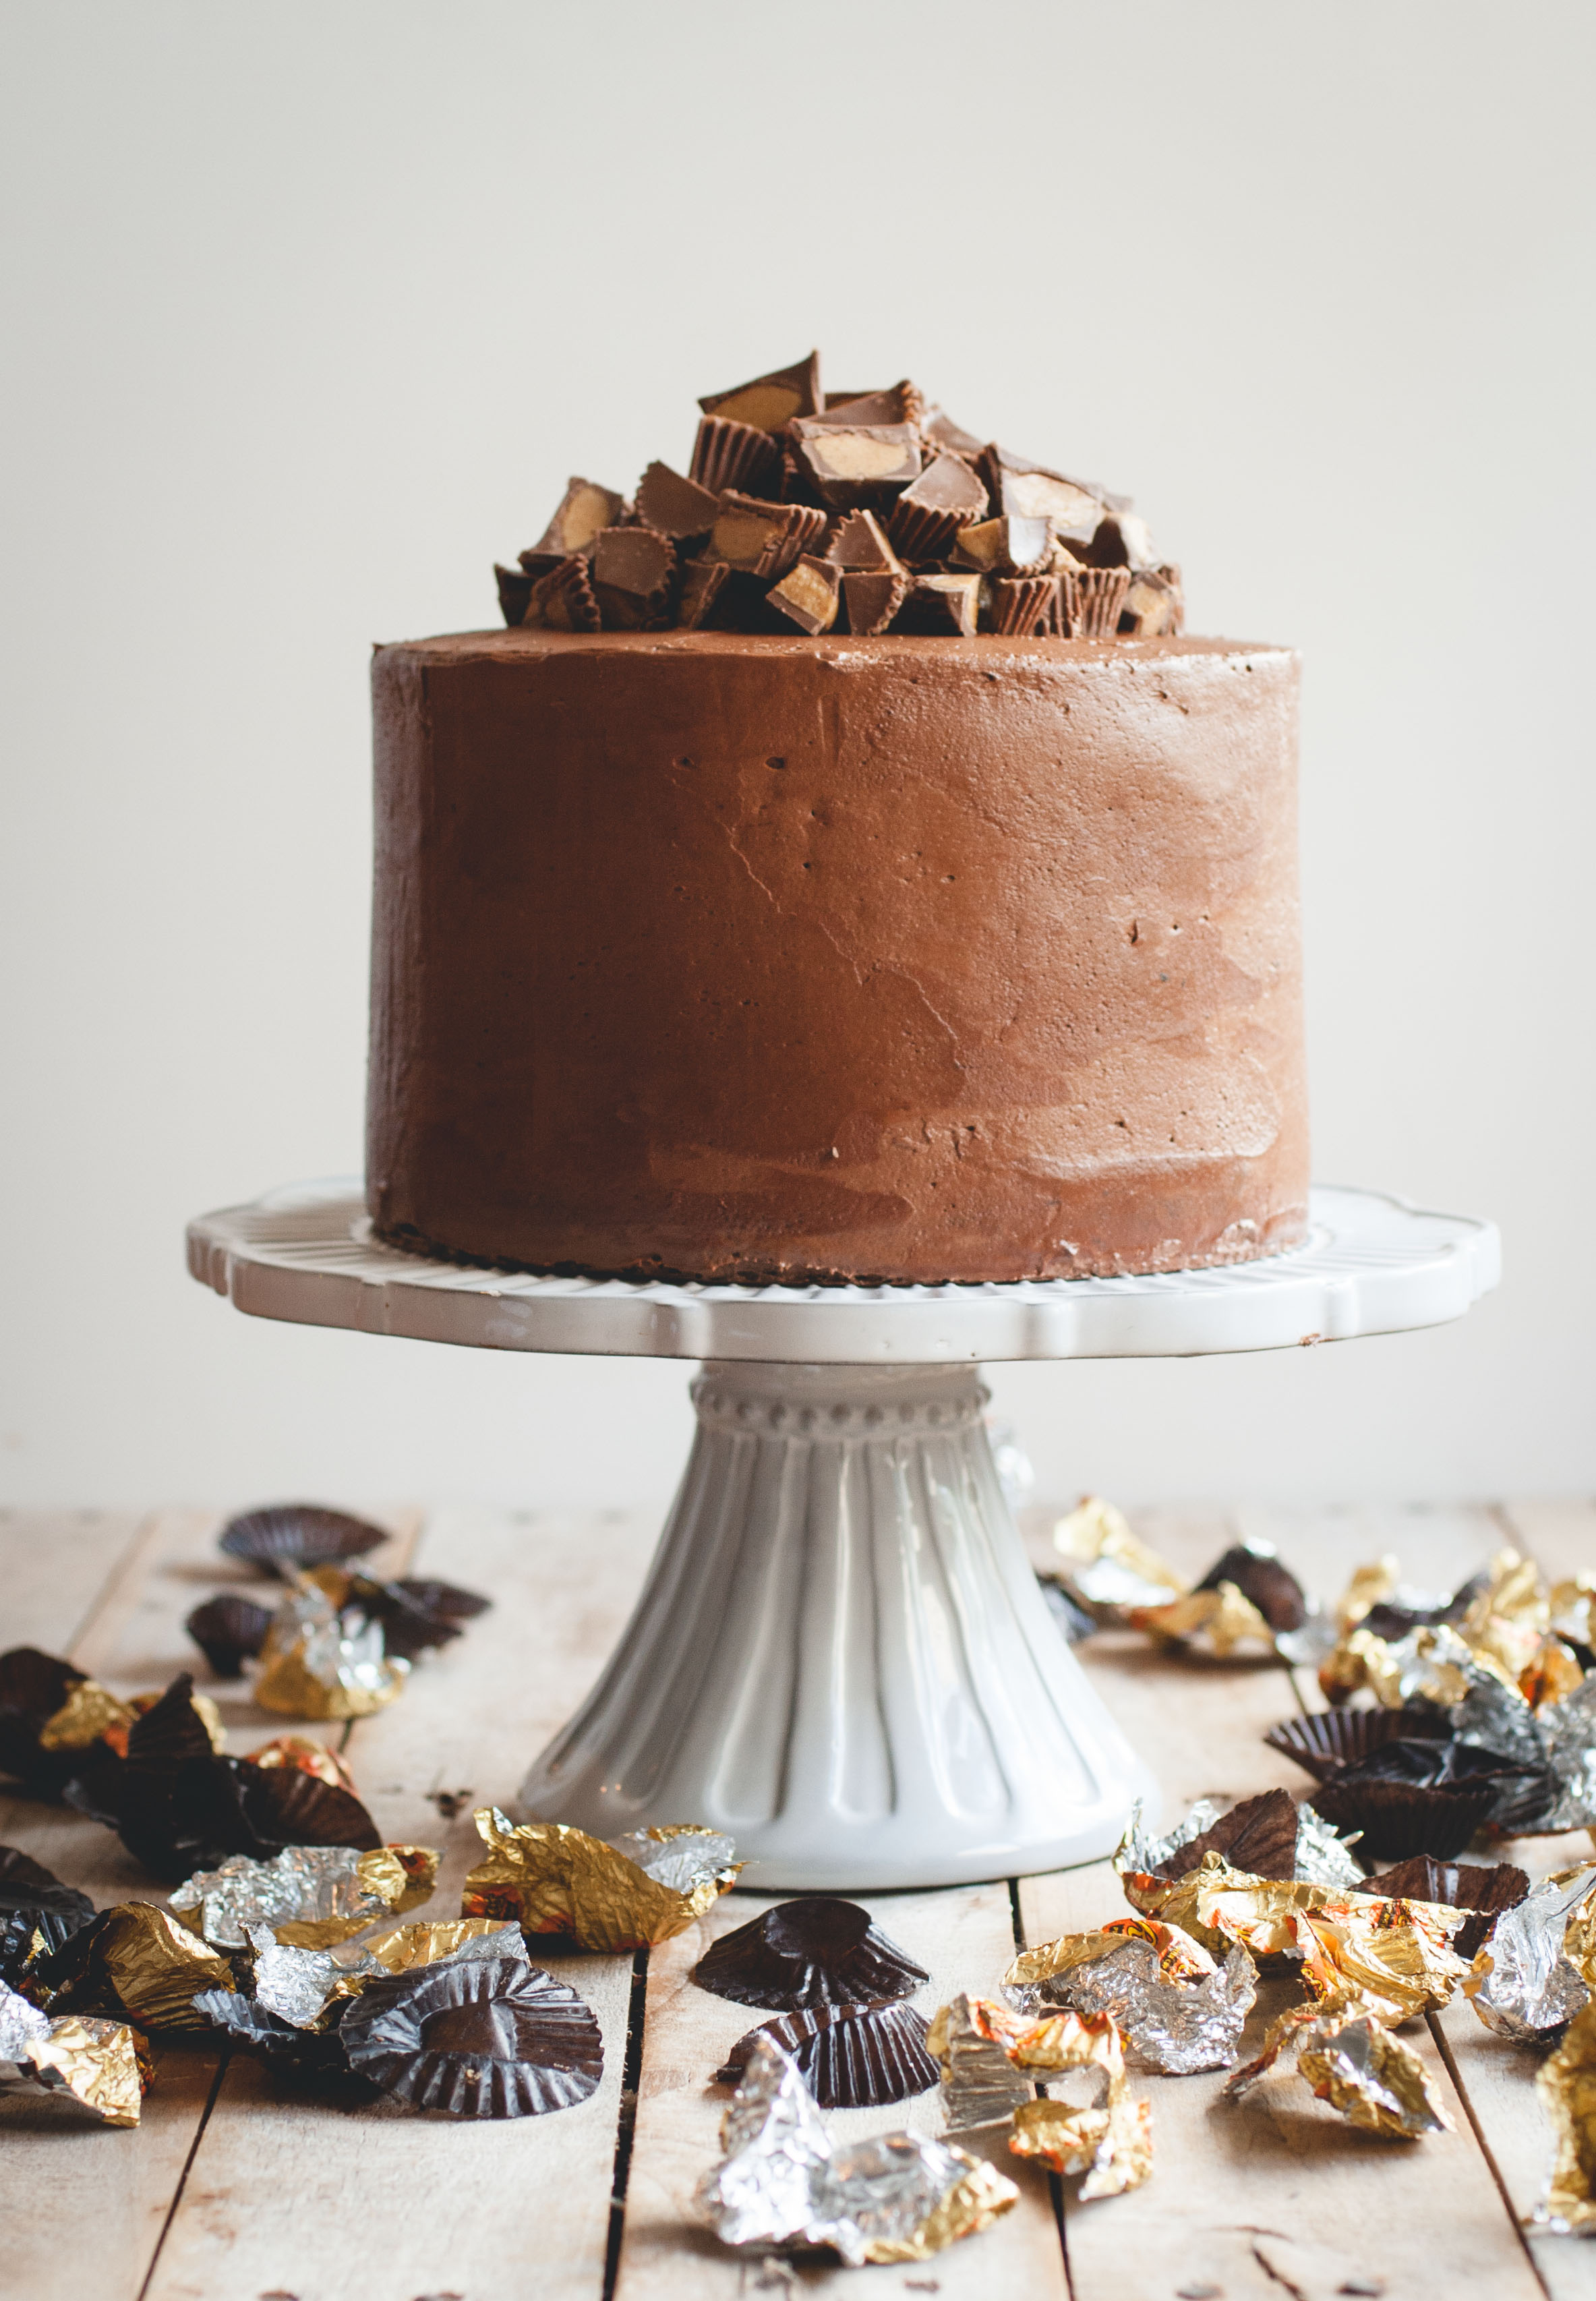 Chocolate Peanut Butter Cup Cake   Butterlust Chocolate Peanut Butter Cup Cake    butterlustblog com